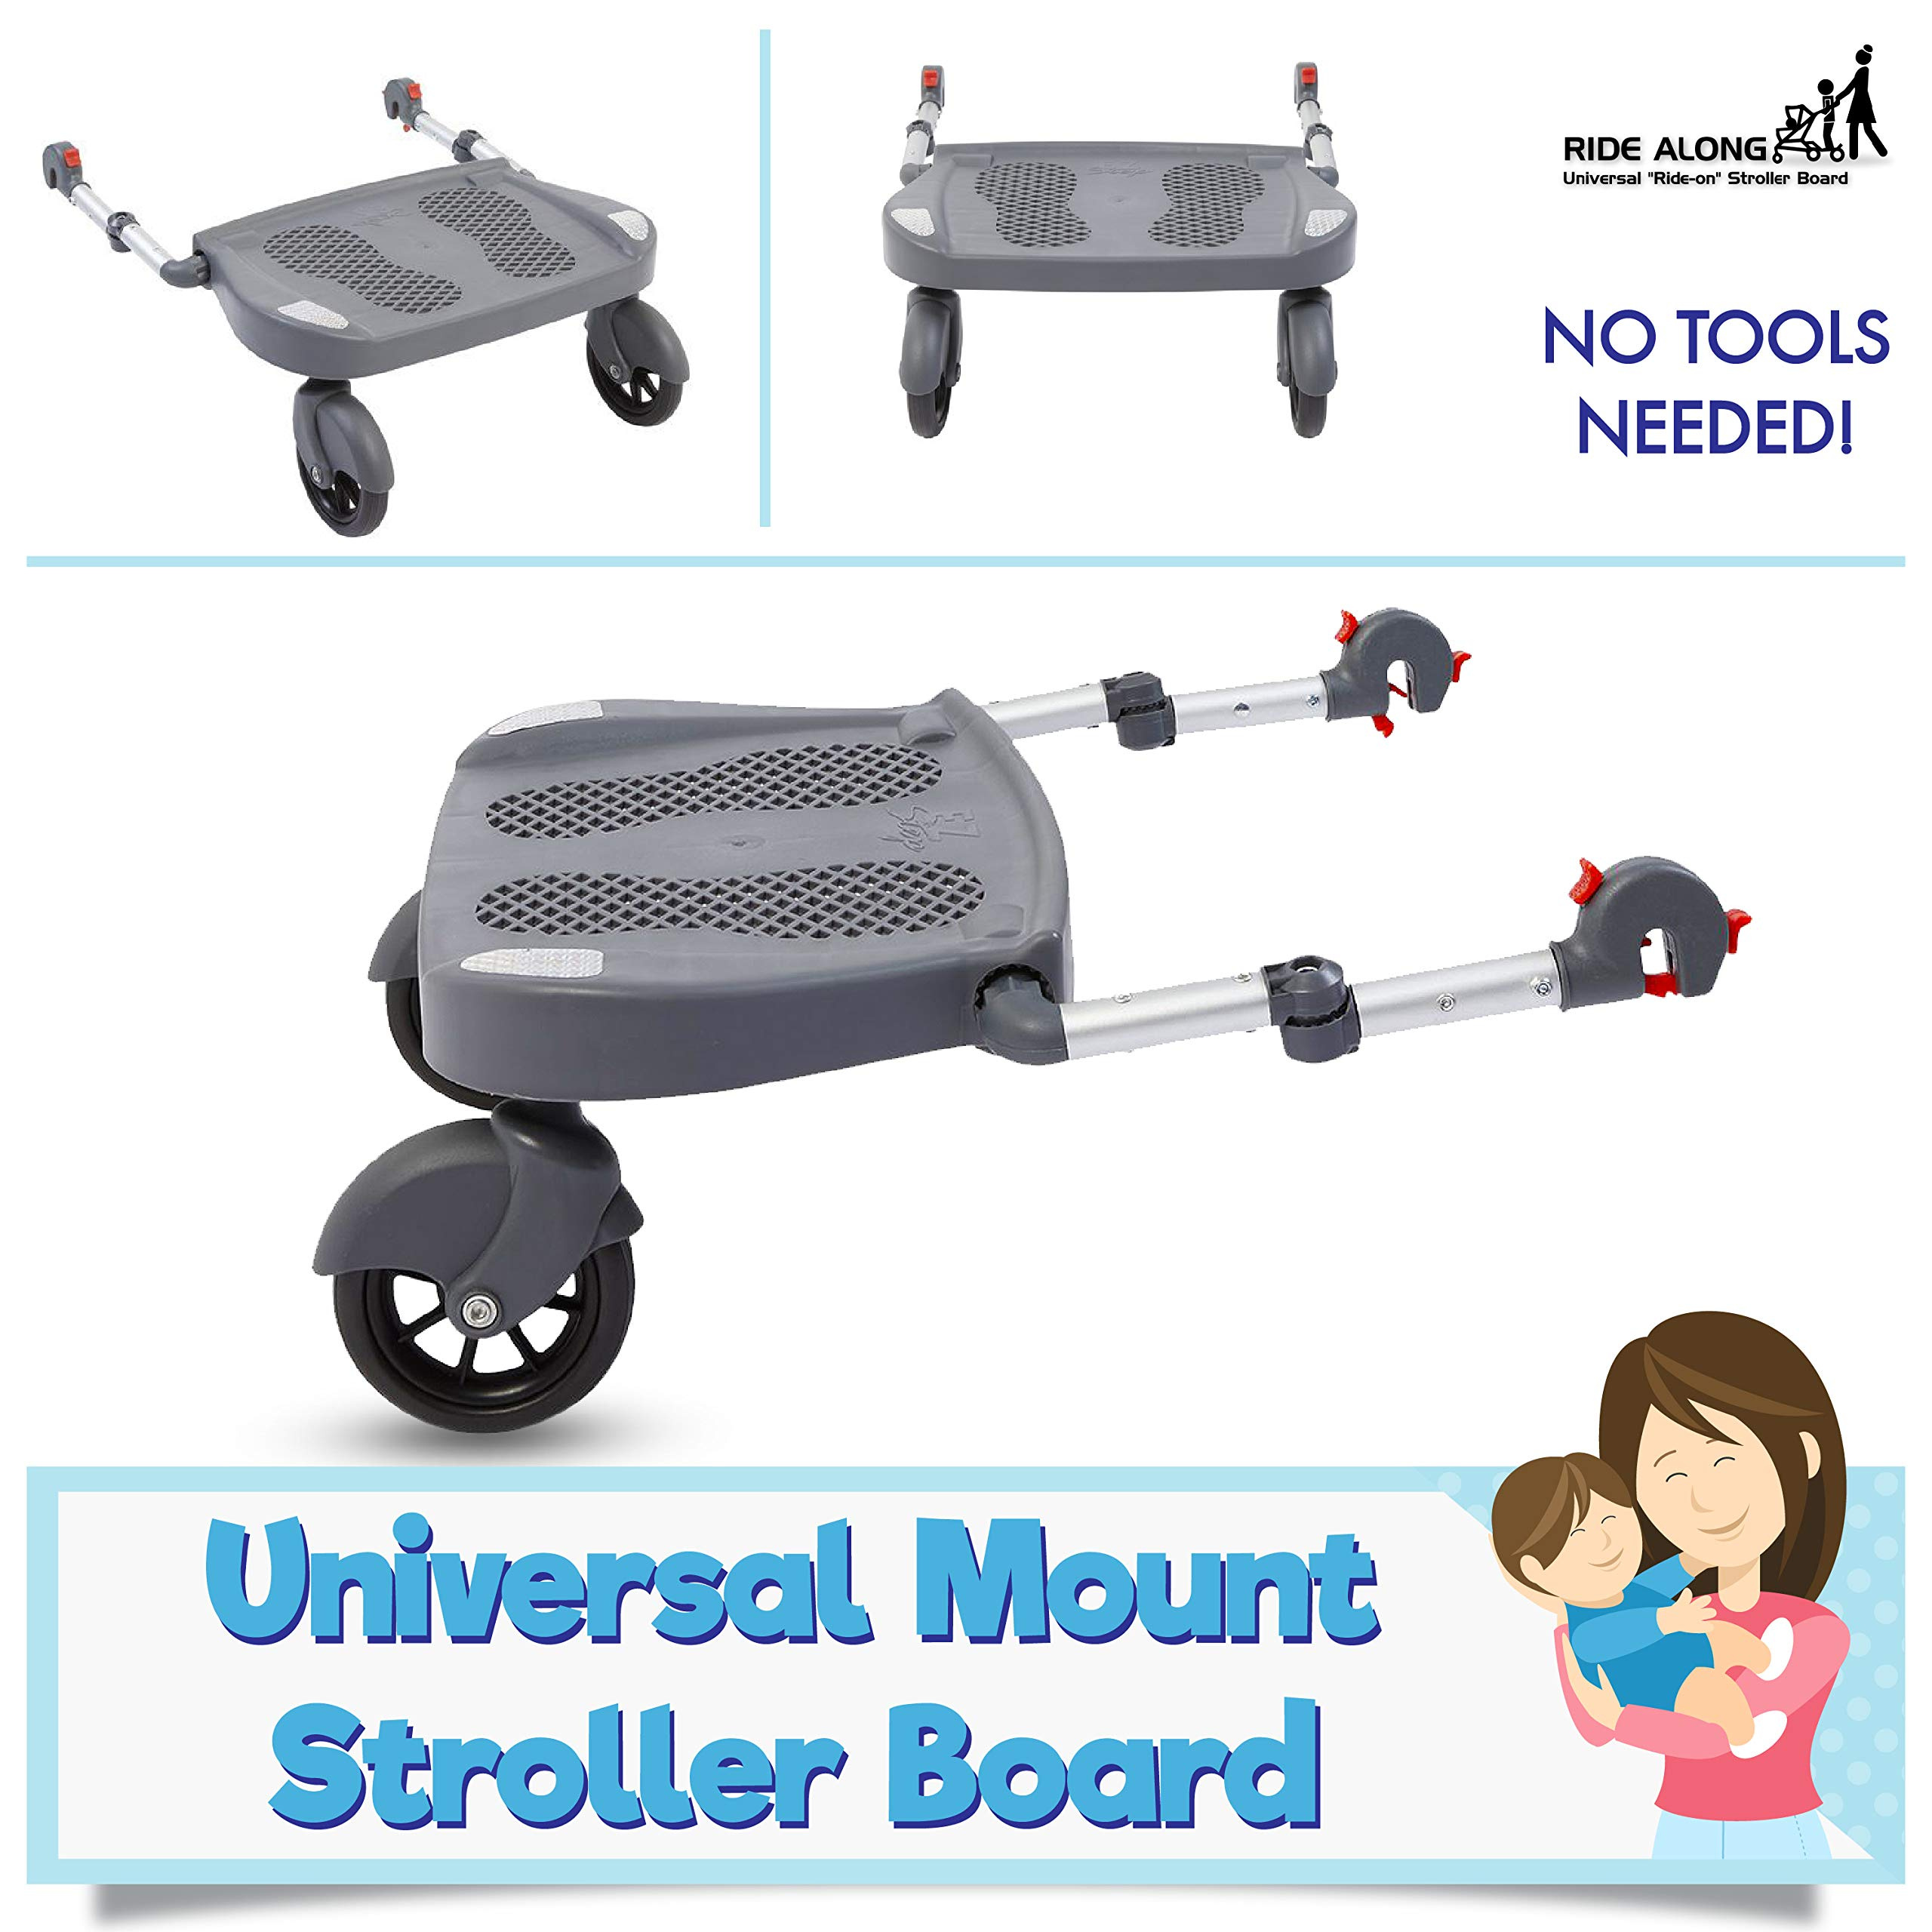 Ride Along - Universal Mount Ride-On Stroller Board Toddler Bump-Free Anti-Slip Buggy Stand by EZ step (Image #2)